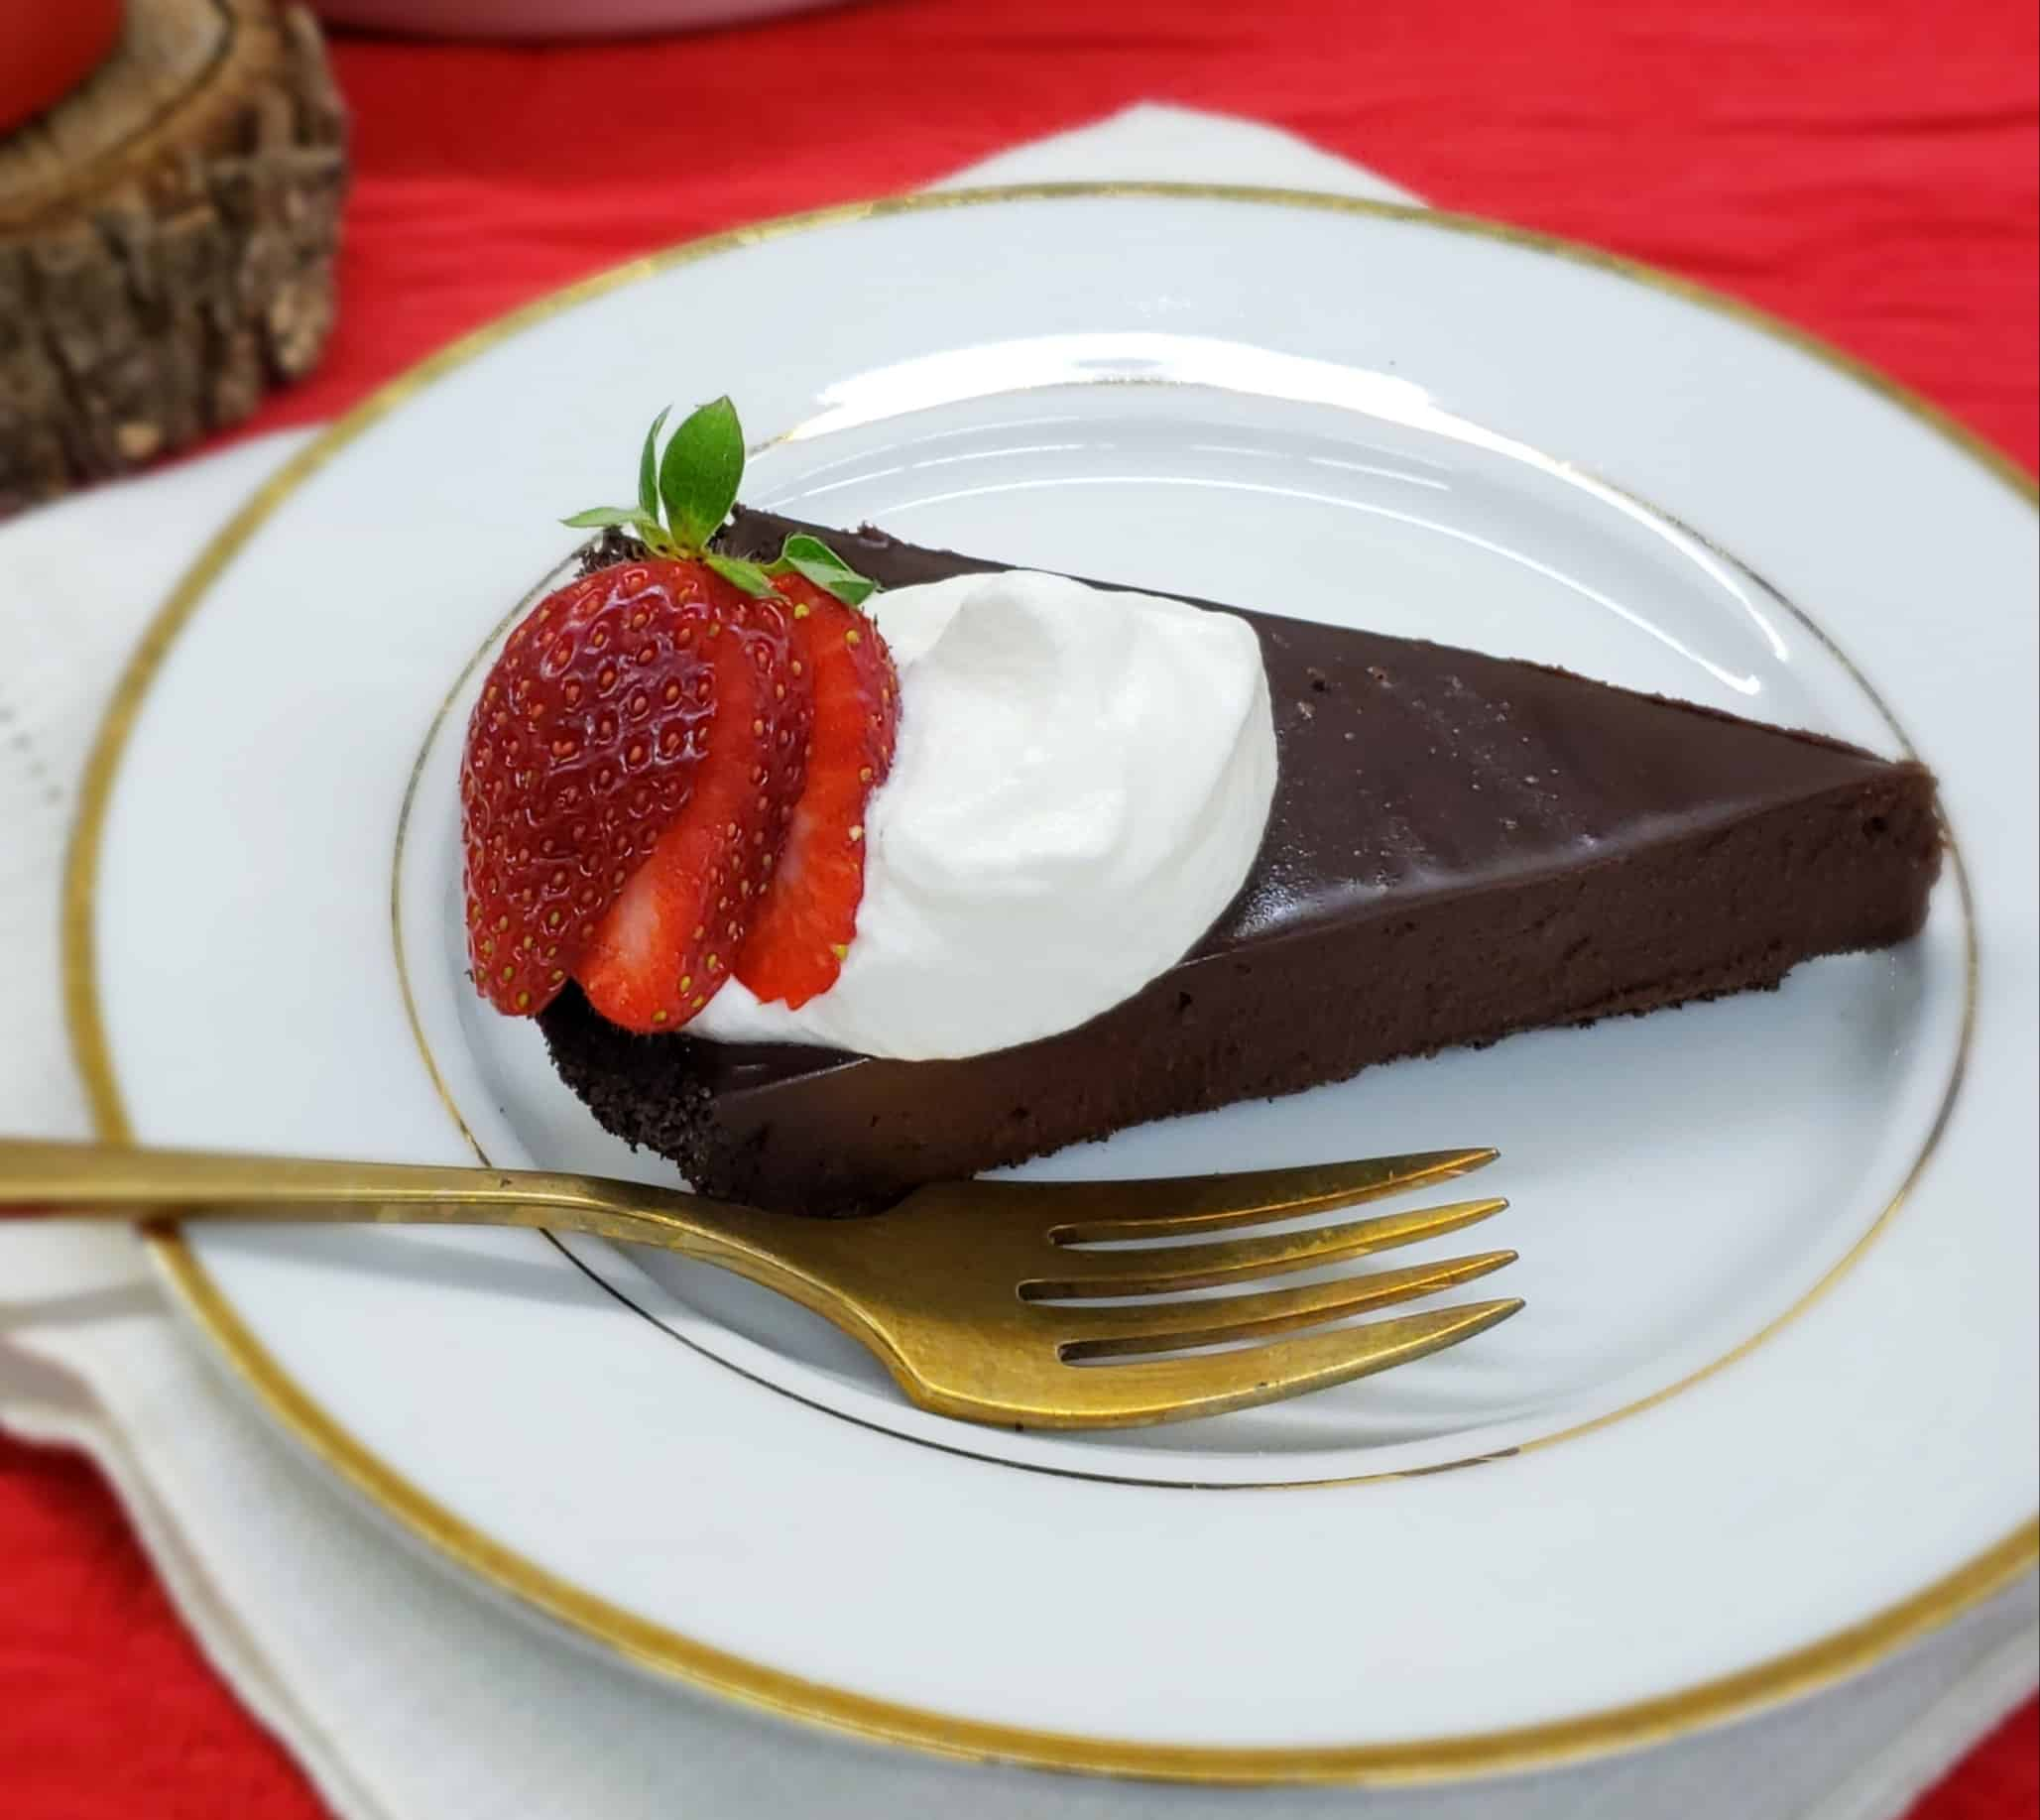 Slice of chocolate tart with whipped cream and strawberry slices on a gold rimmed plate and gold fork